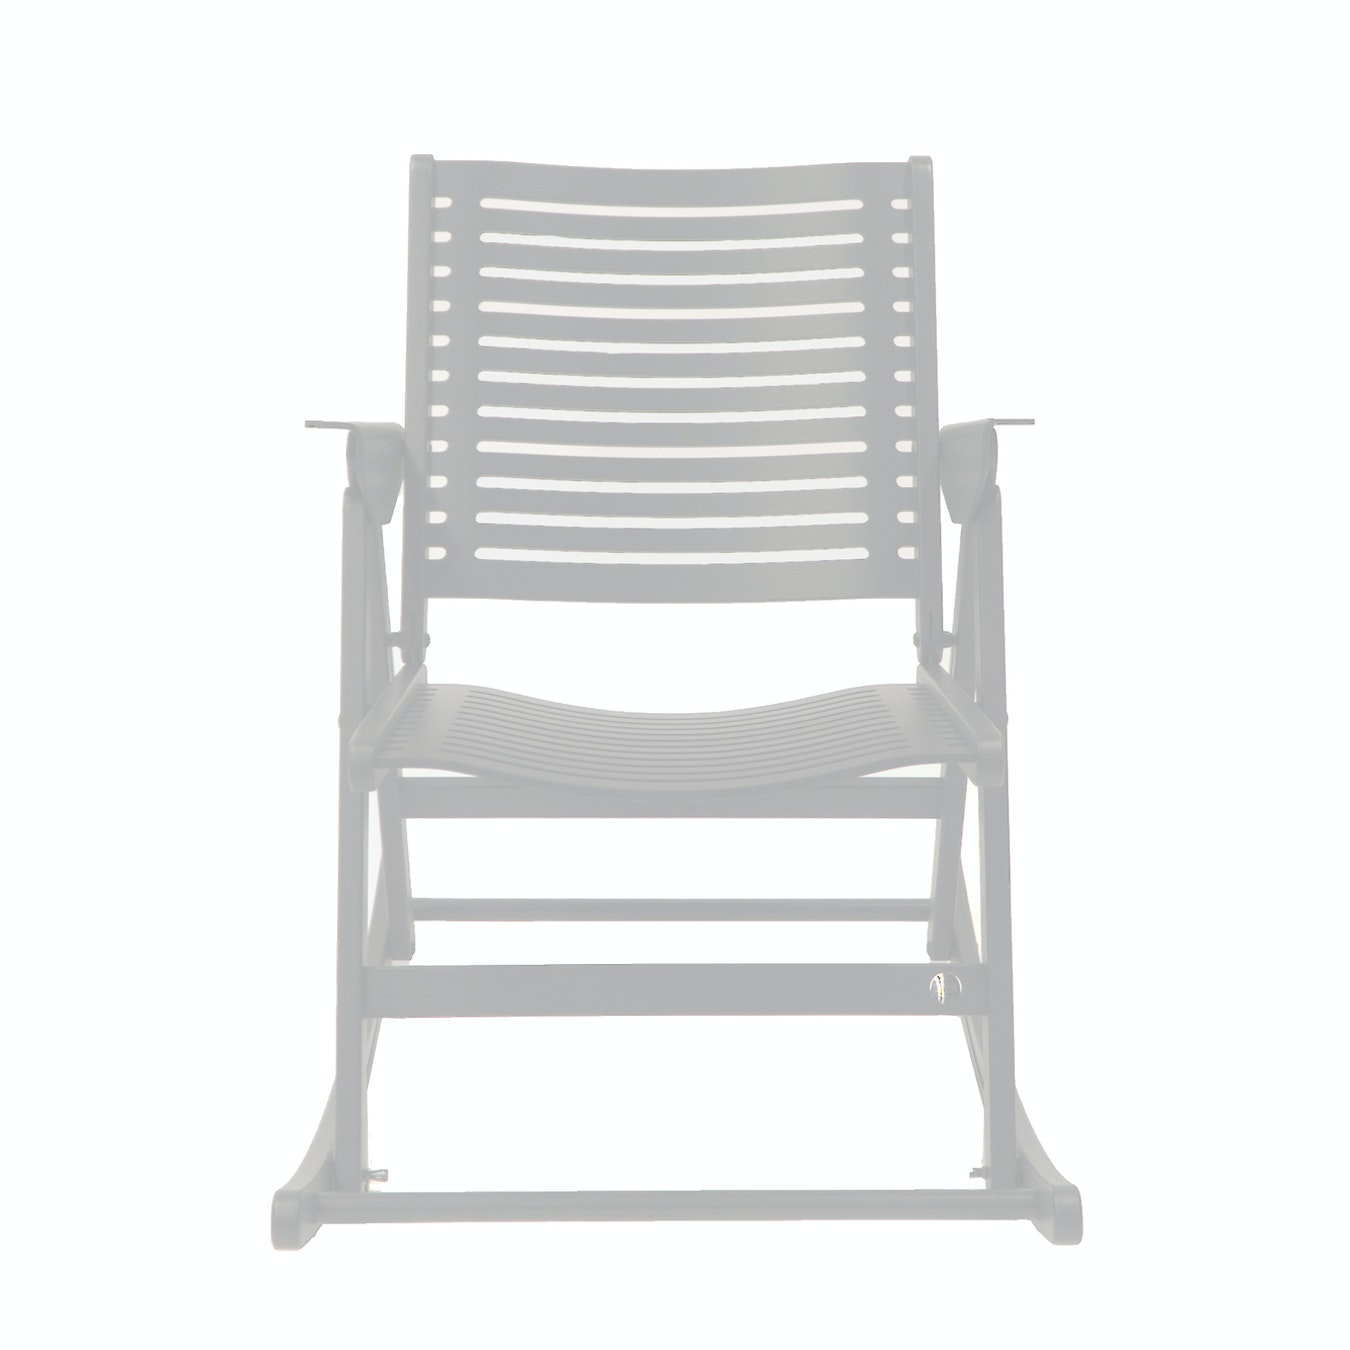 Prime Rex Lounge Chair In White Ashwood Andrewgaddart Wooden Chair Designs For Living Room Andrewgaddartcom